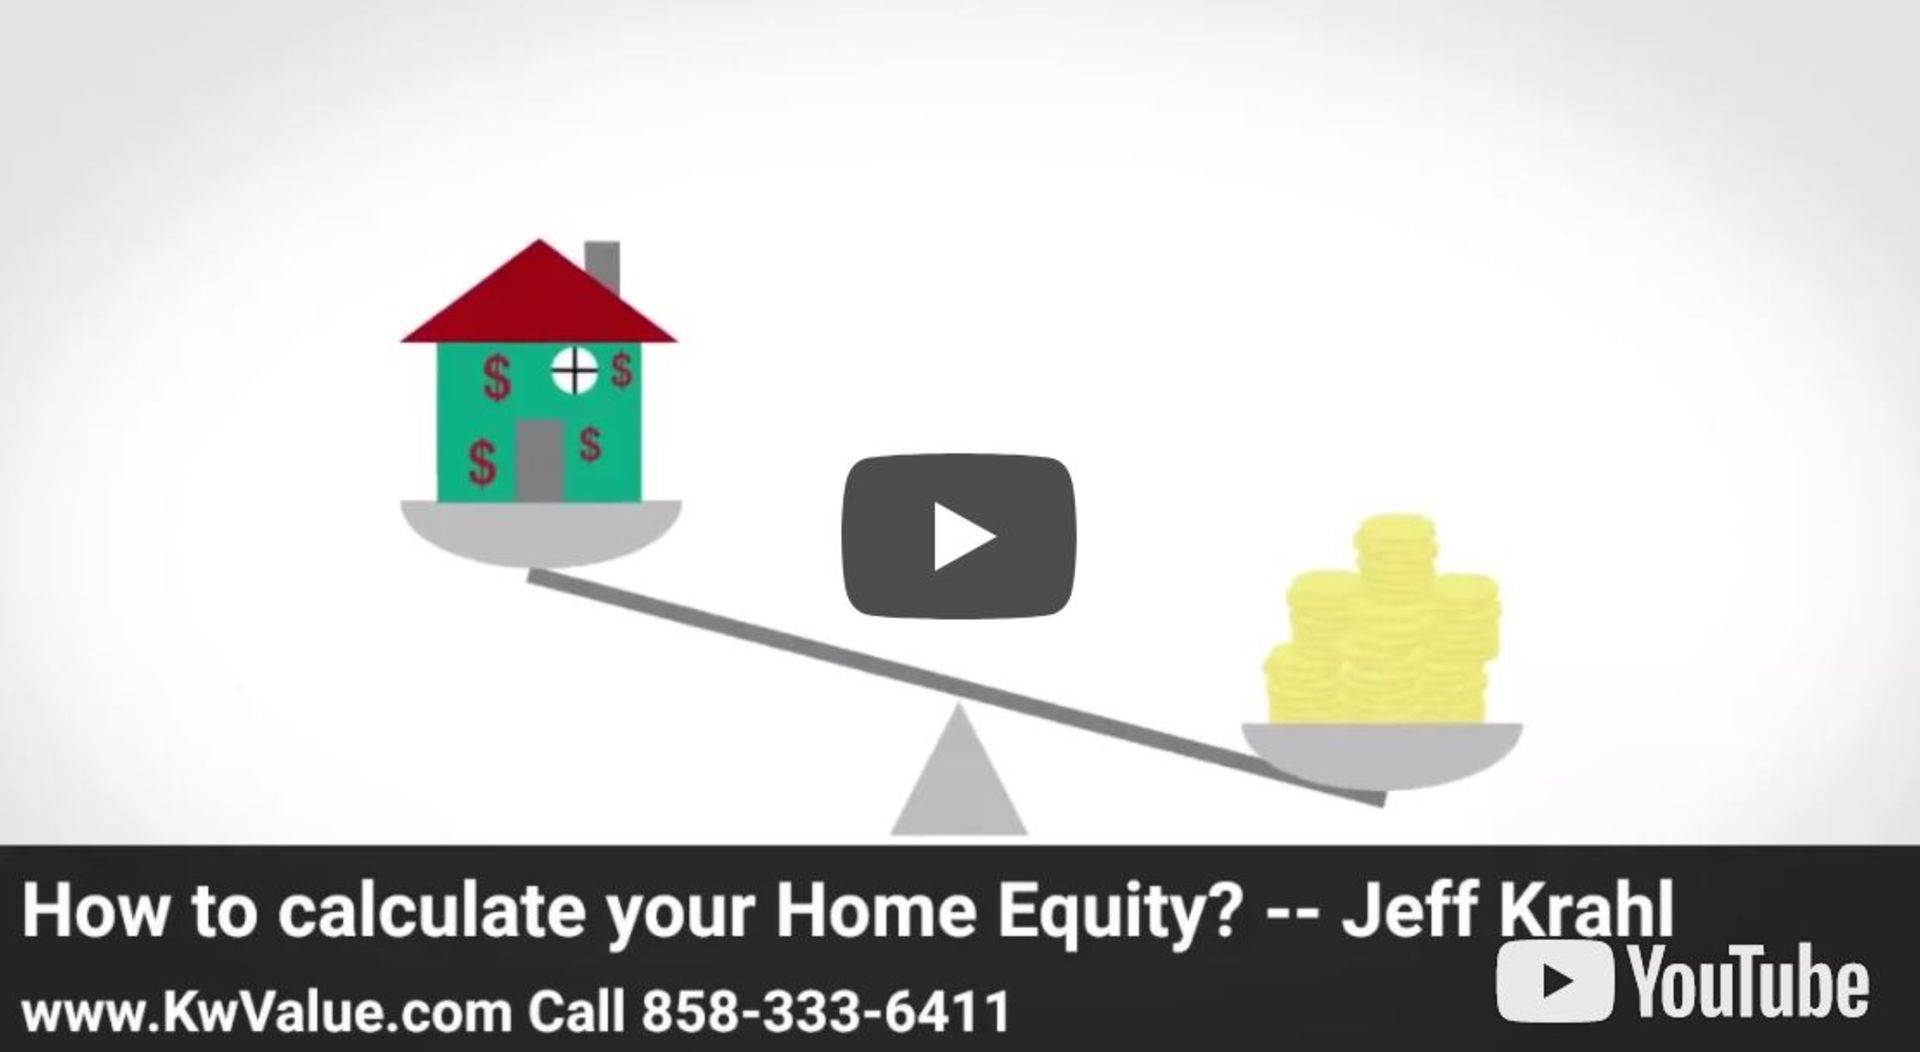 How to calculate your Home Equity?